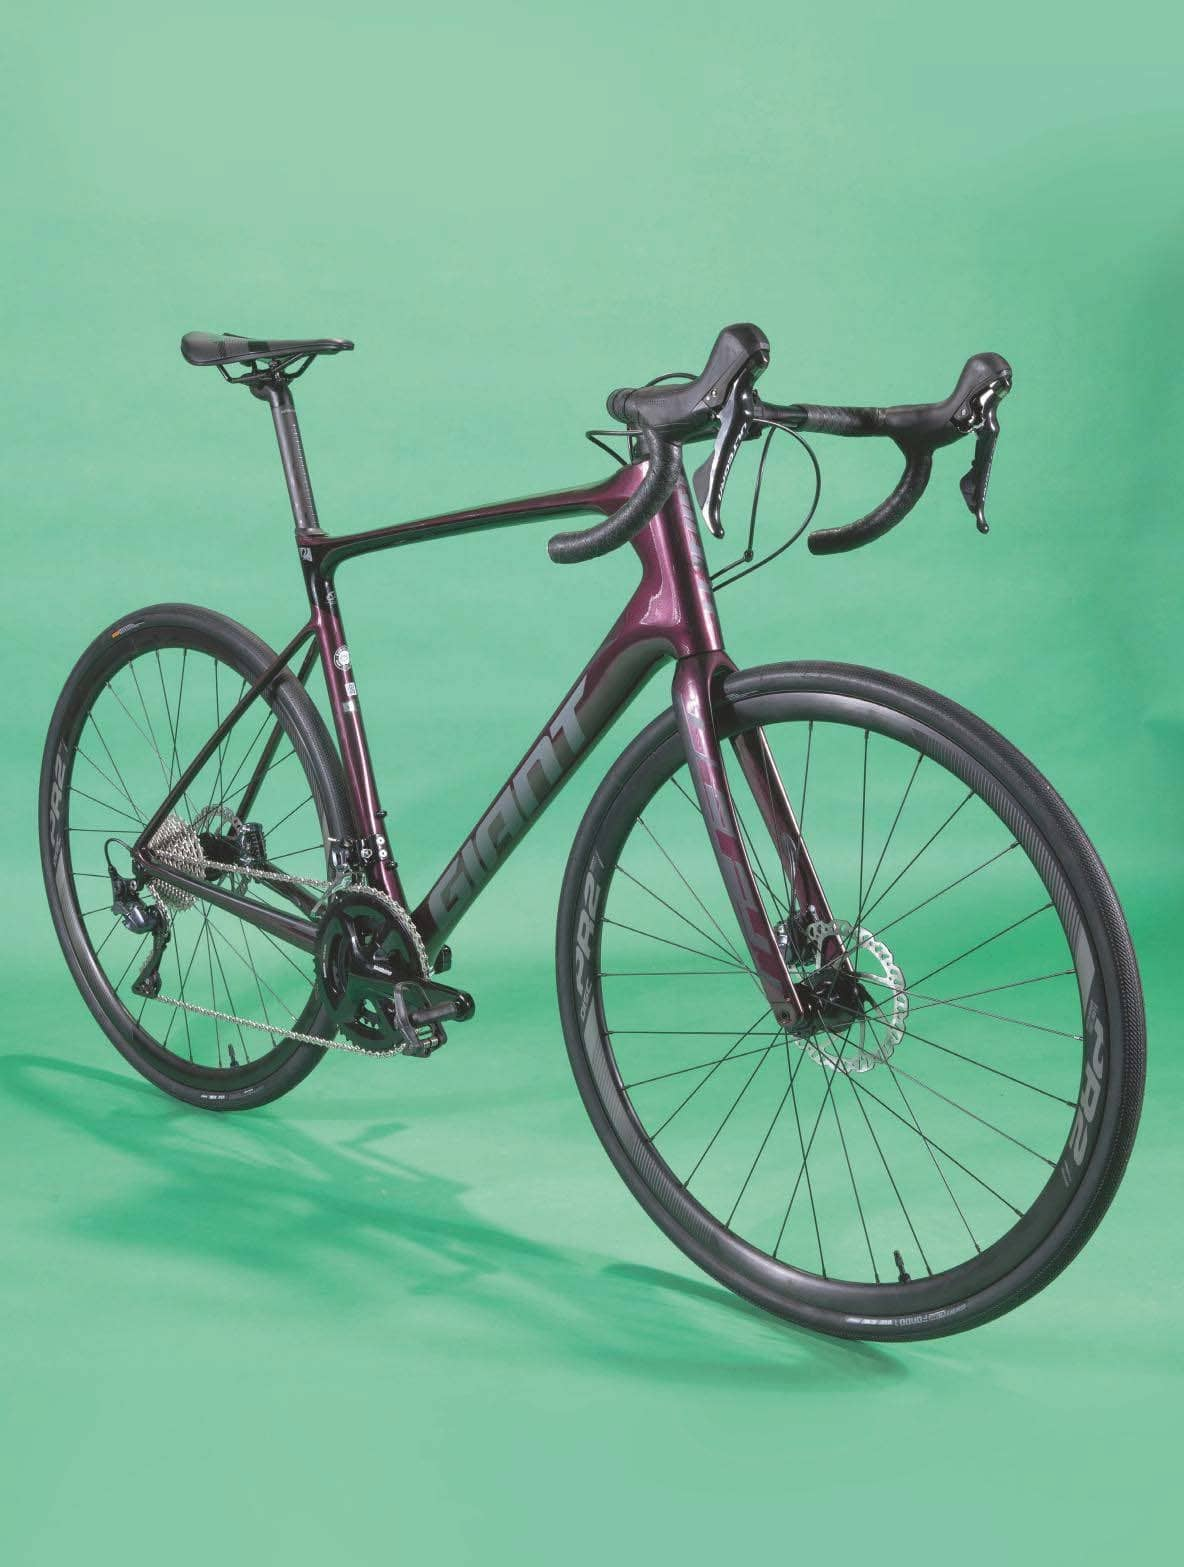 Giant Defy Advanced 1 £2,199 | 8.59kg